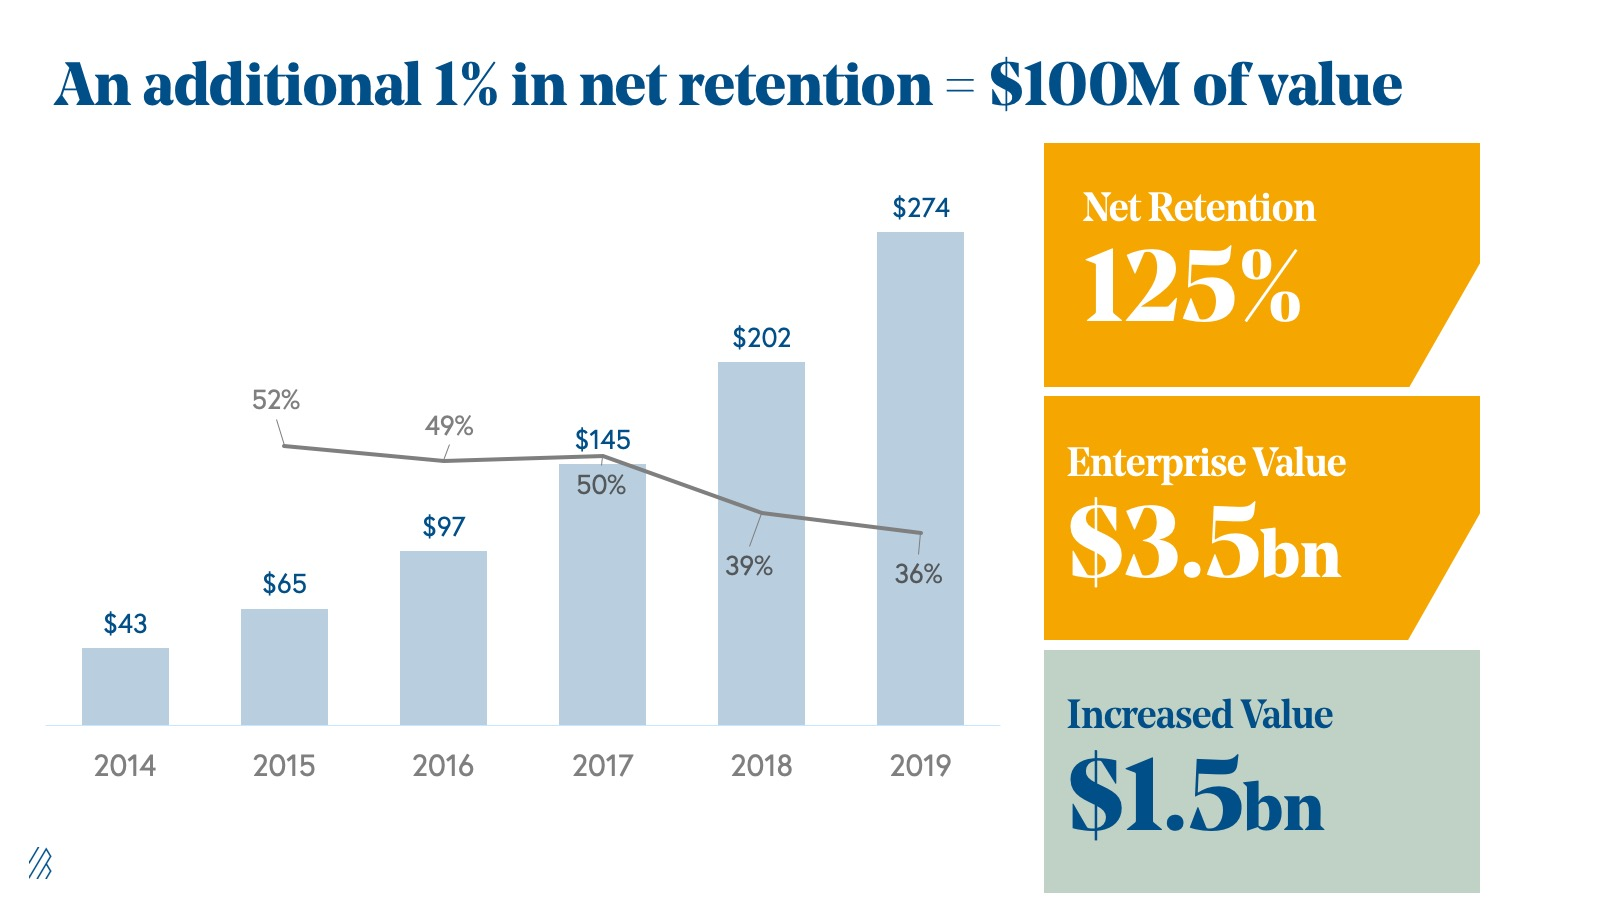 Improving net retention rate has great ROI.